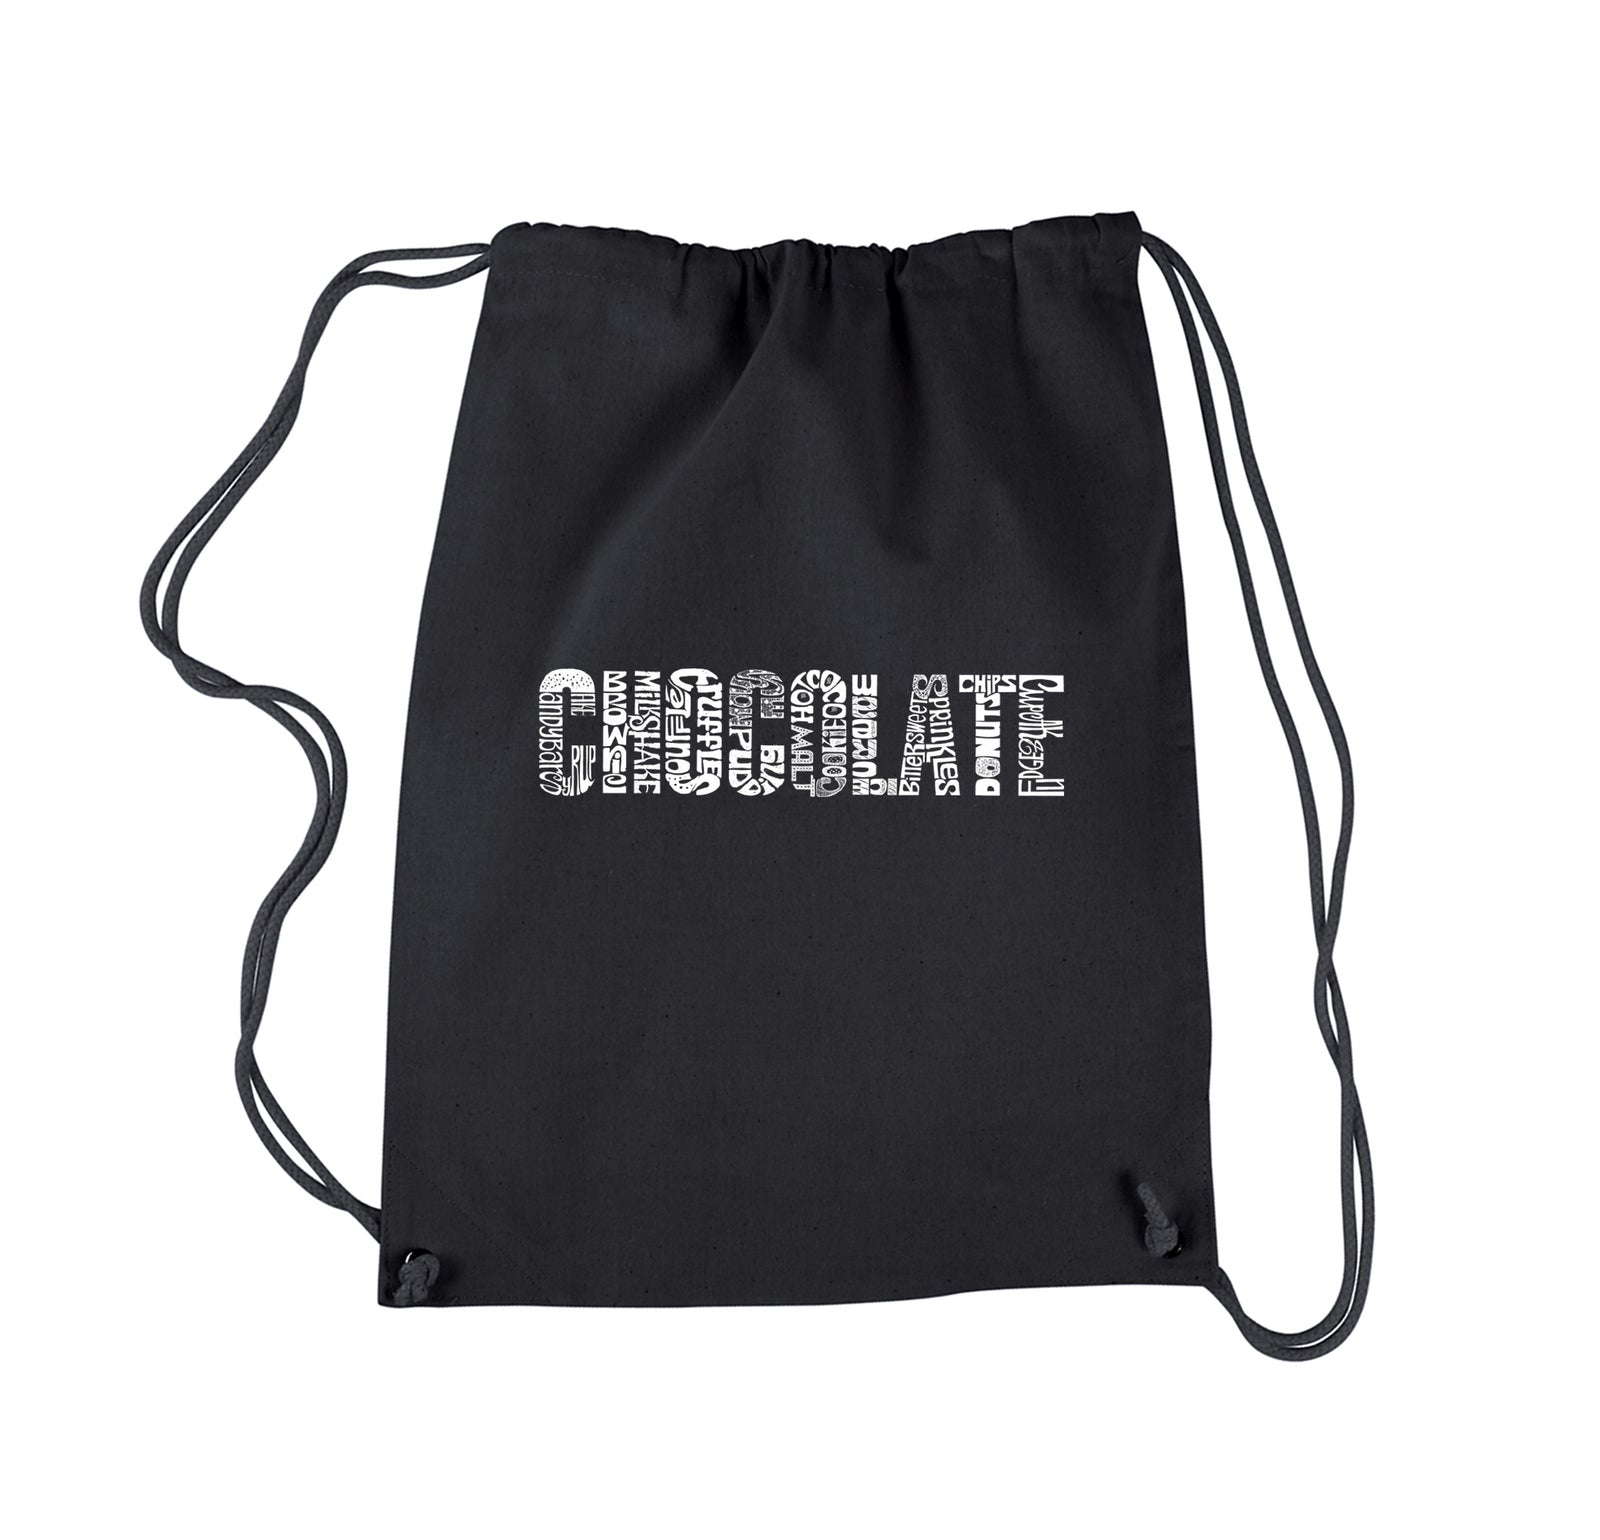 Drawstring Backpack - Different foods made with chocolate